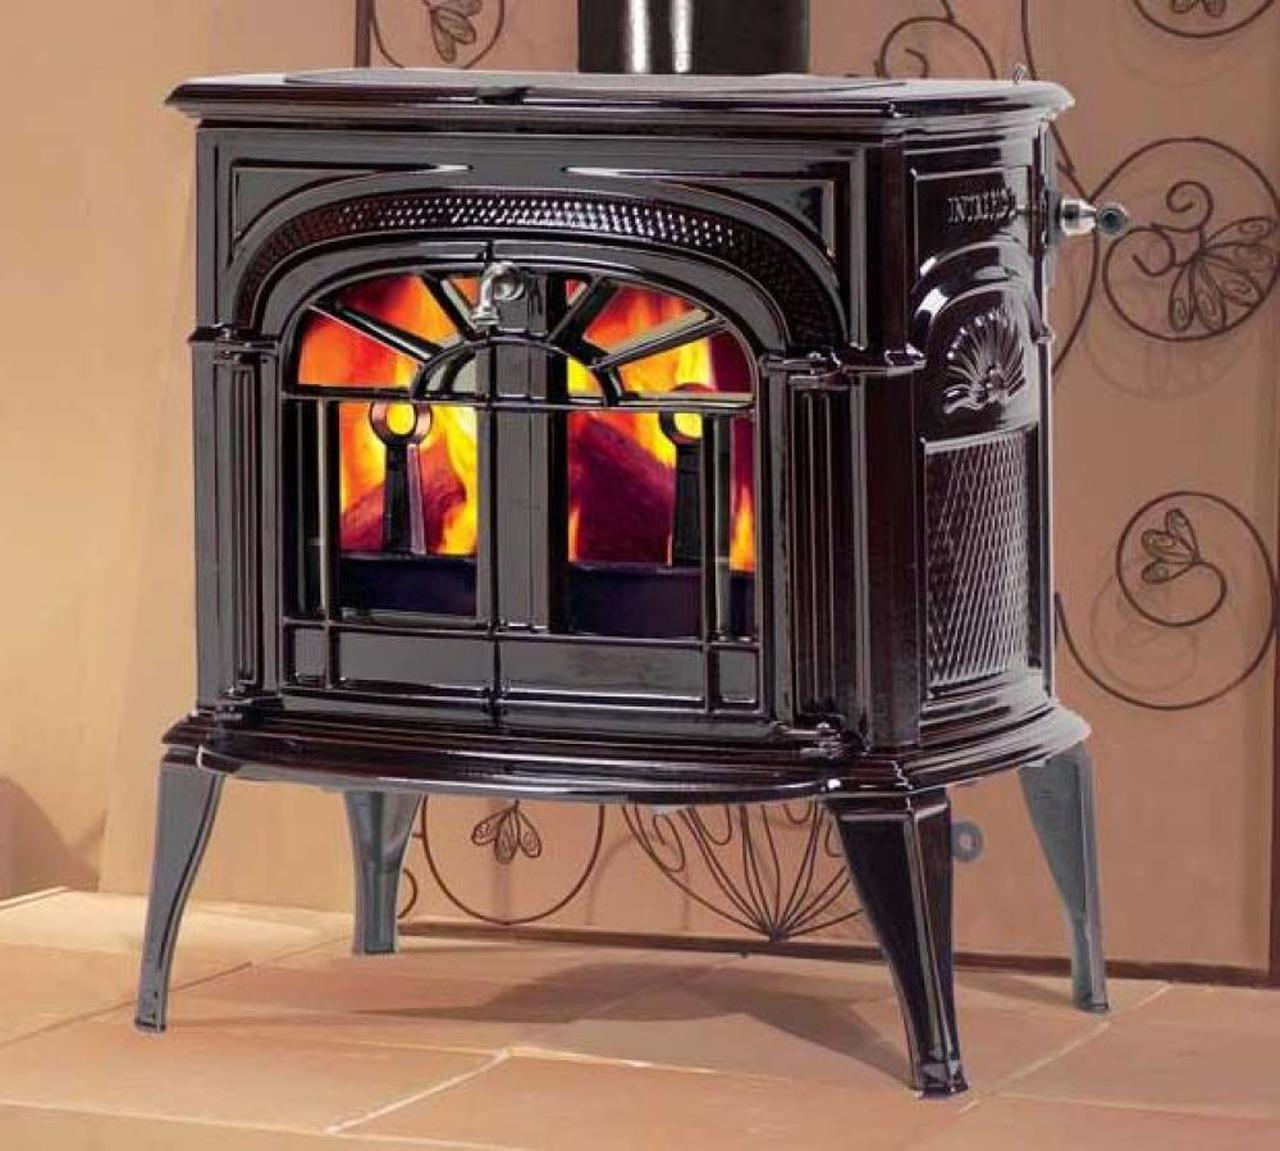 Marvelous Vermont Castings Intrepid Direct Vent Gas Stove Embers Fireplaces Wiring Cloud Uslyletkolfr09Org